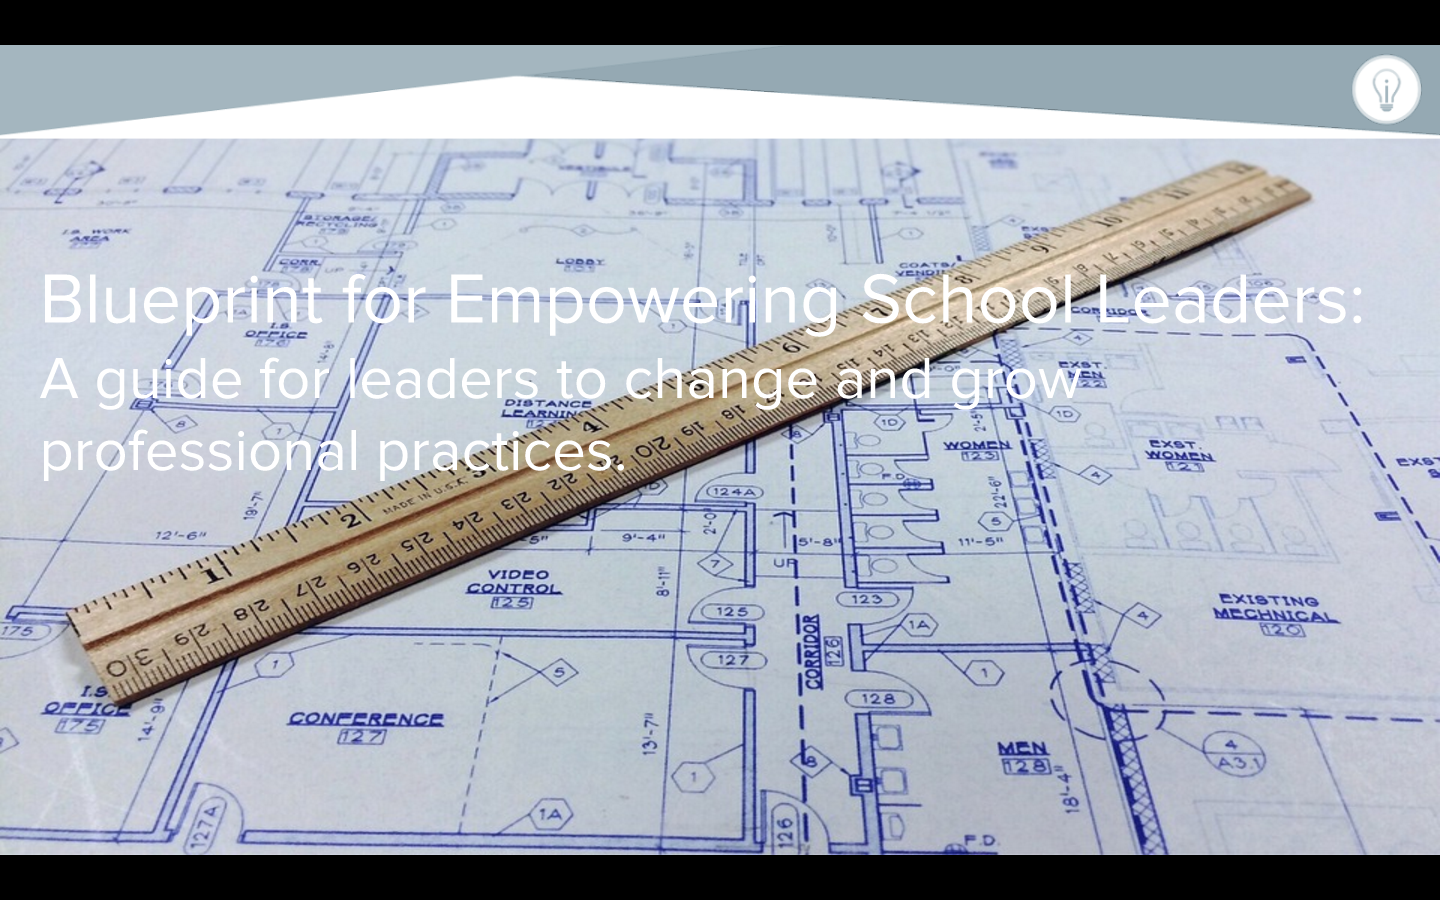 Blueprint for Empowering School Leaders